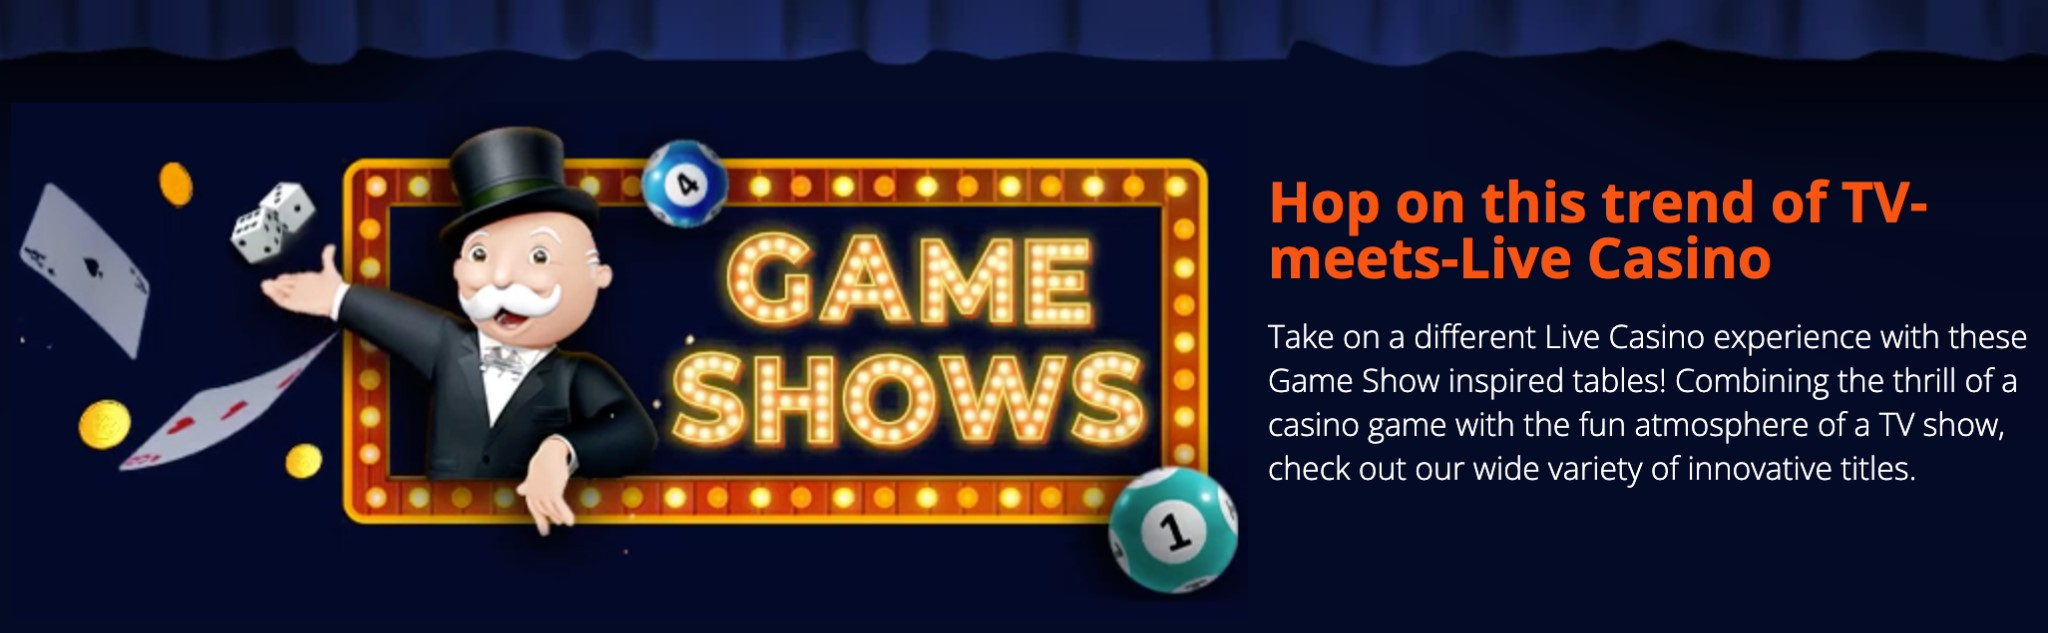 live game shows